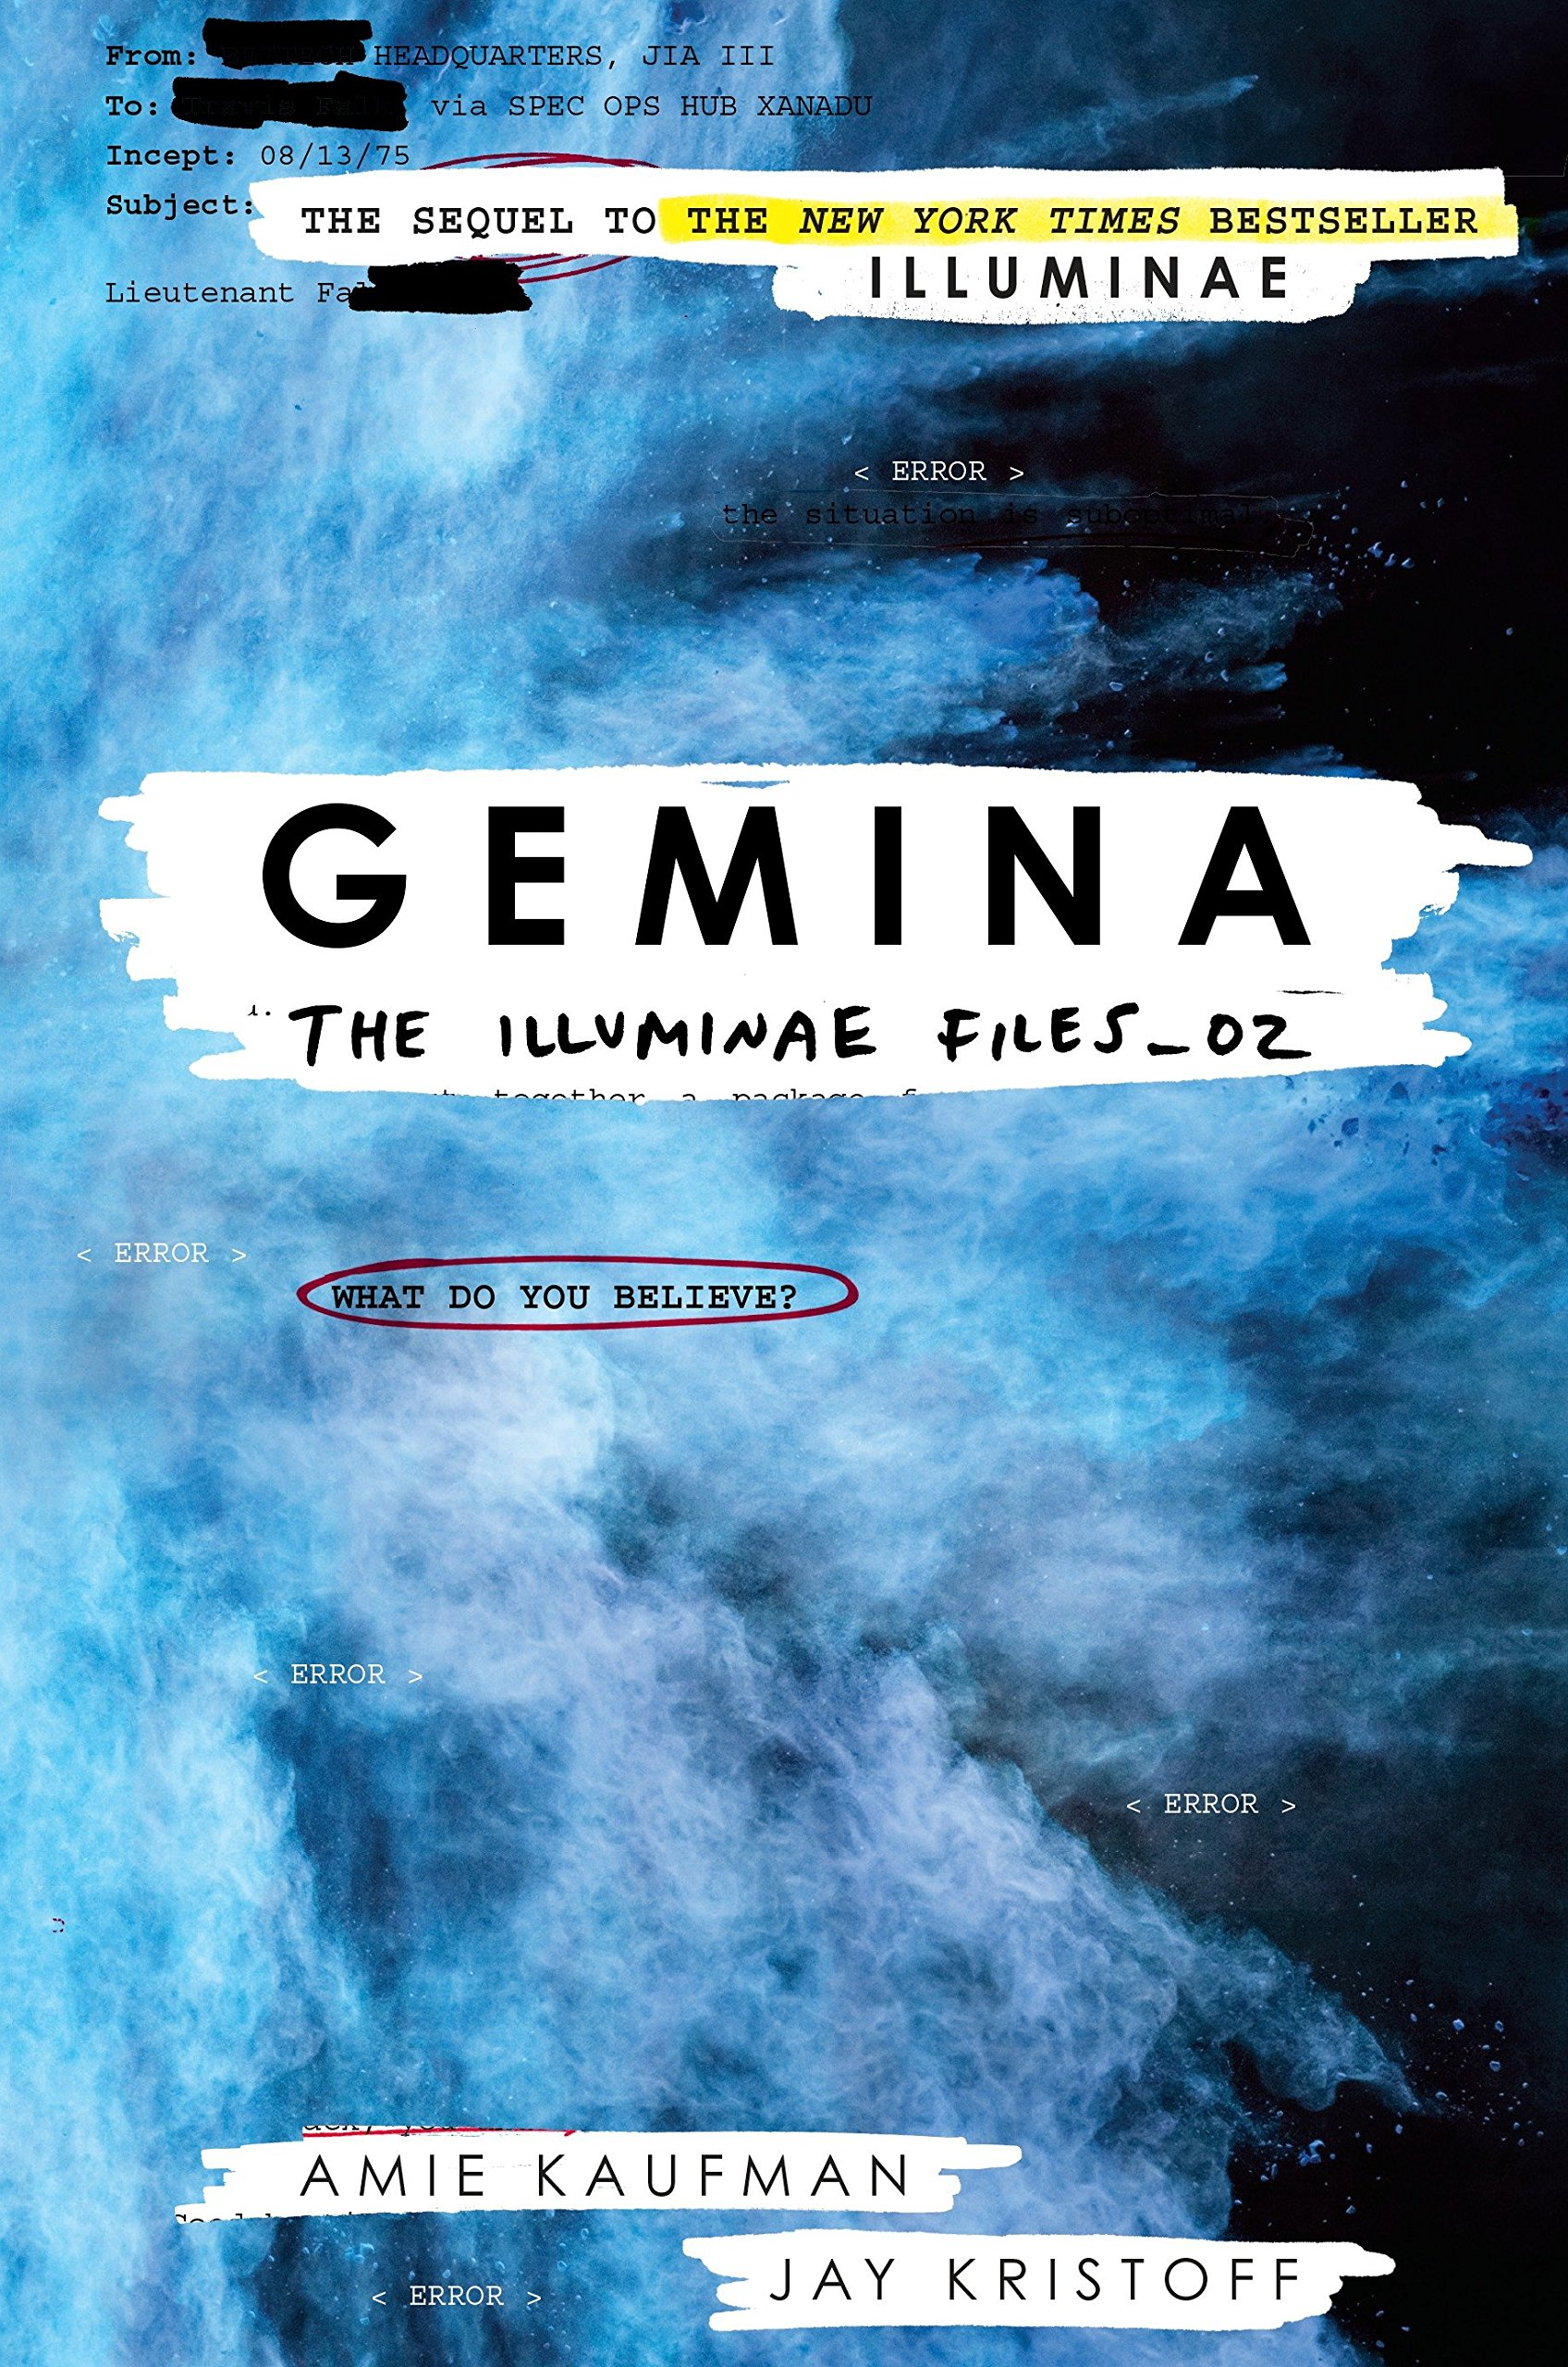 Amazon.com: Gemina (The Illuminae Files) (9780553499155): Kaufman ...